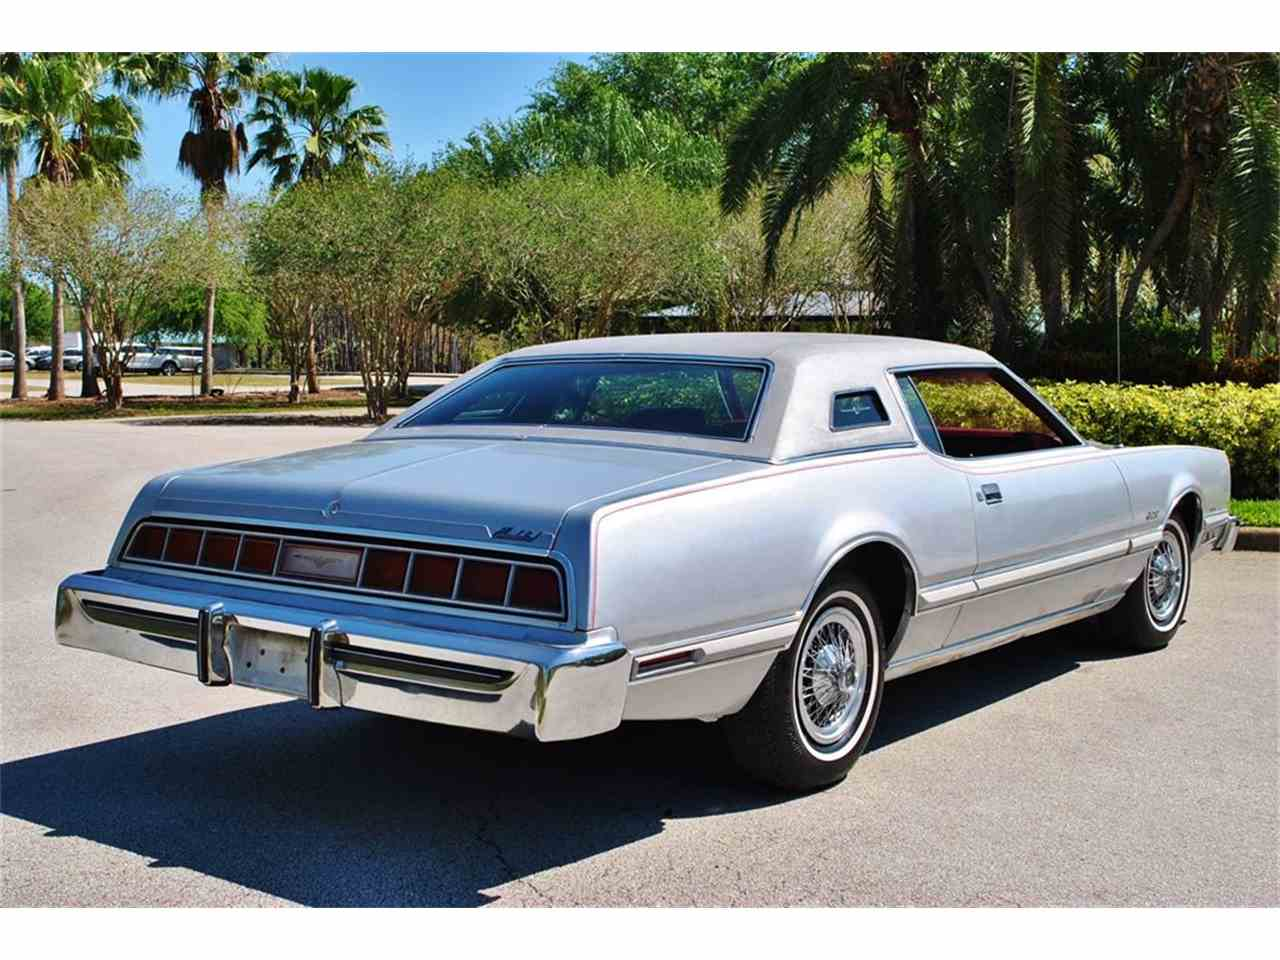 1976 Ford Thunderbird For Sale Classiccars Com Cc 972384